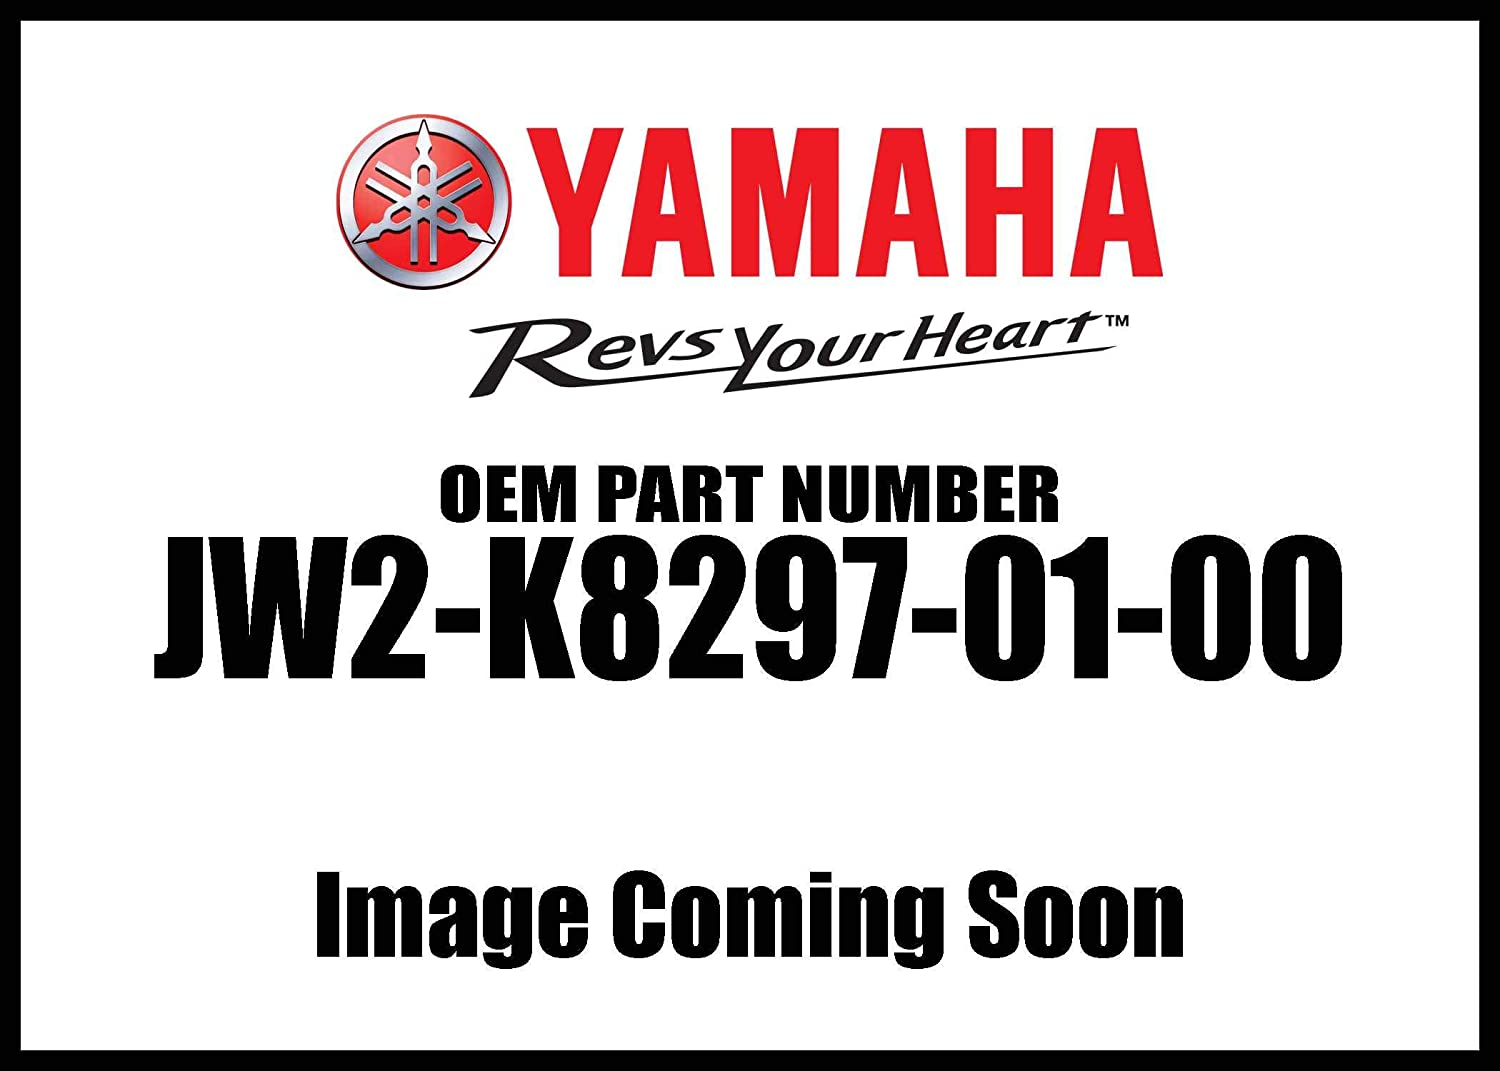 Caution 1; JW2K82970100 Made by Yamaha Yamaha JW2-K8297-01-00 Plate